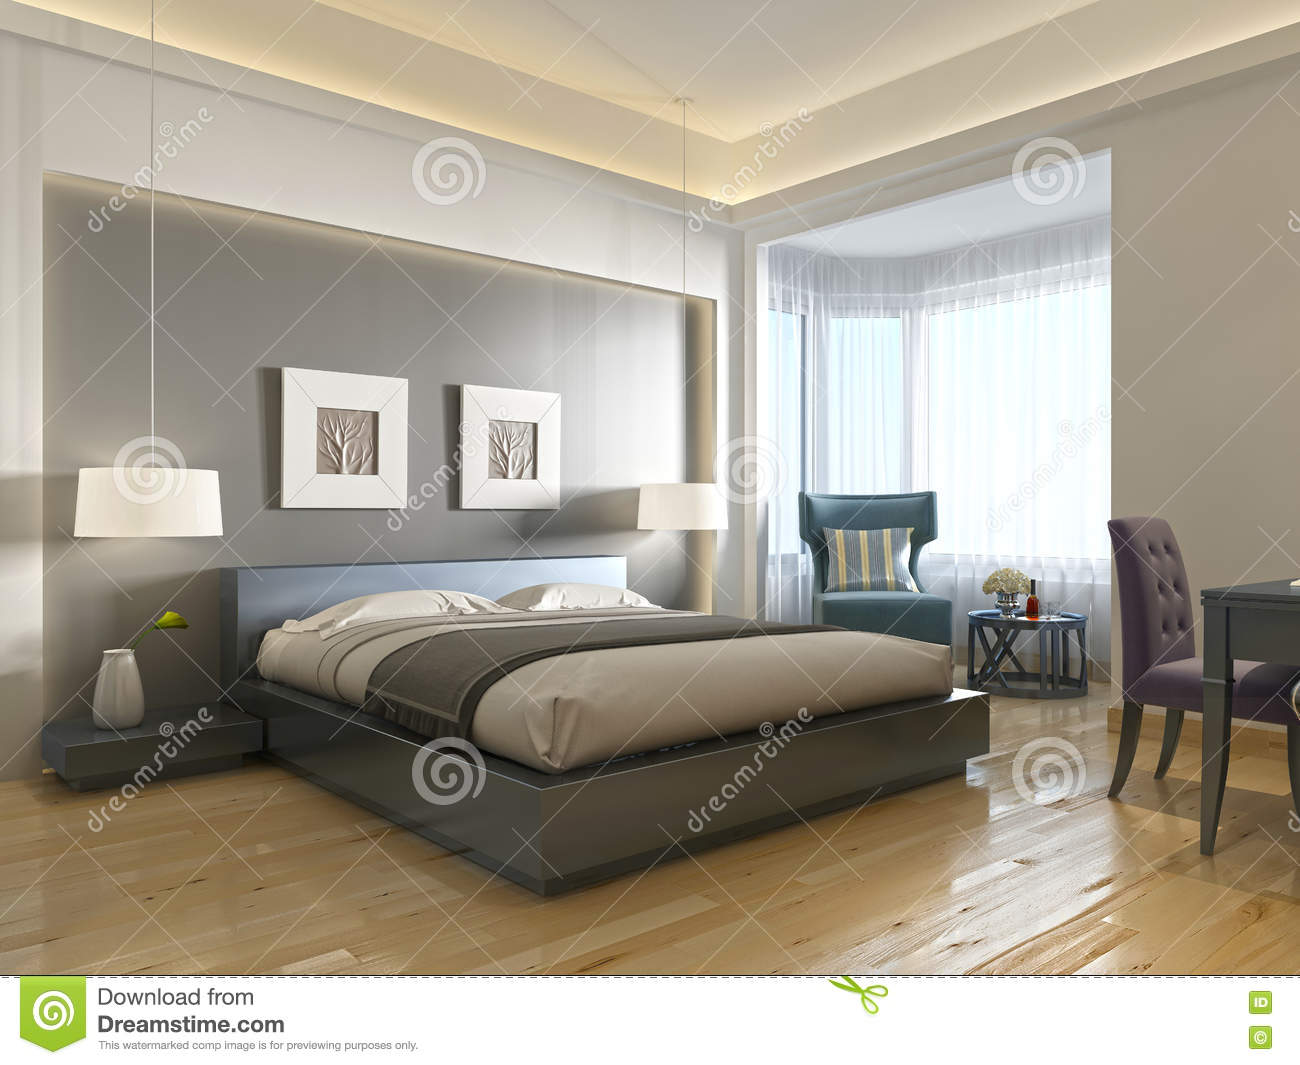 style contemporain moderne de chambre d 39 h tel avec des l ments d 39 art d co illustration stock. Black Bedroom Furniture Sets. Home Design Ideas